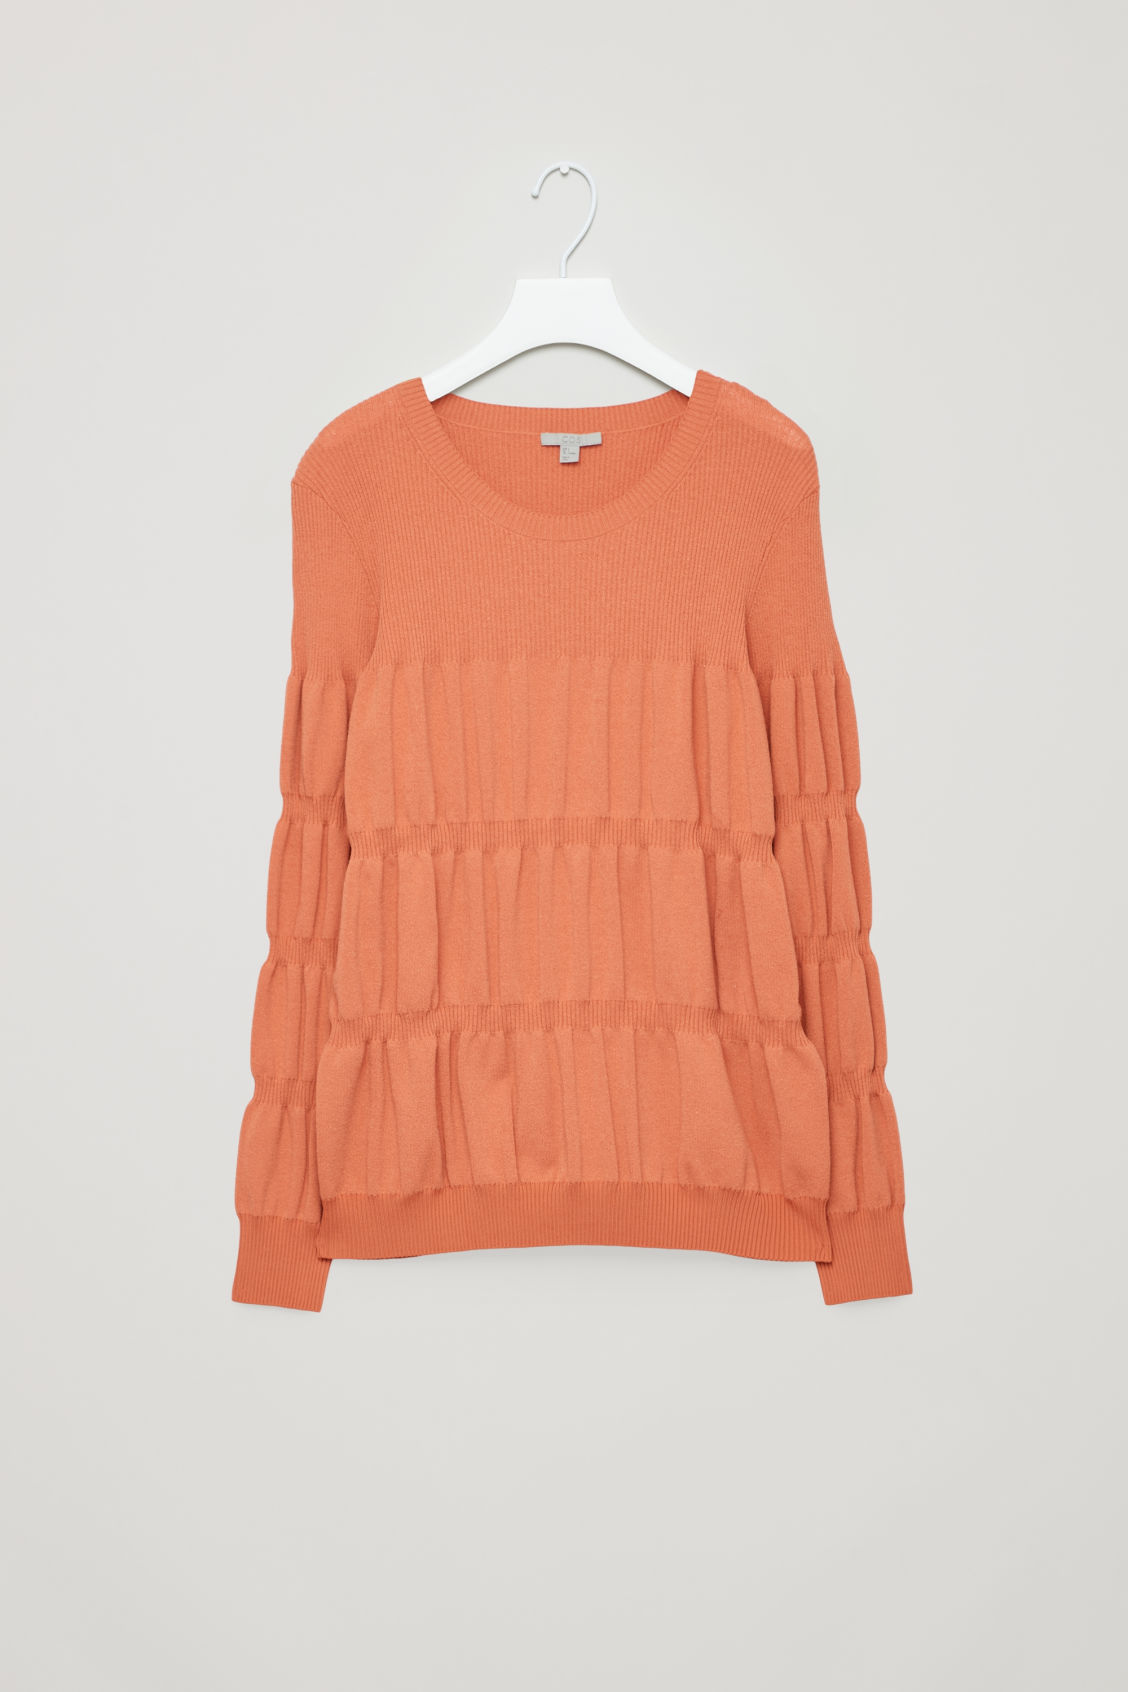 COS Long-Sleeve Rib-Stitched Top in Orange